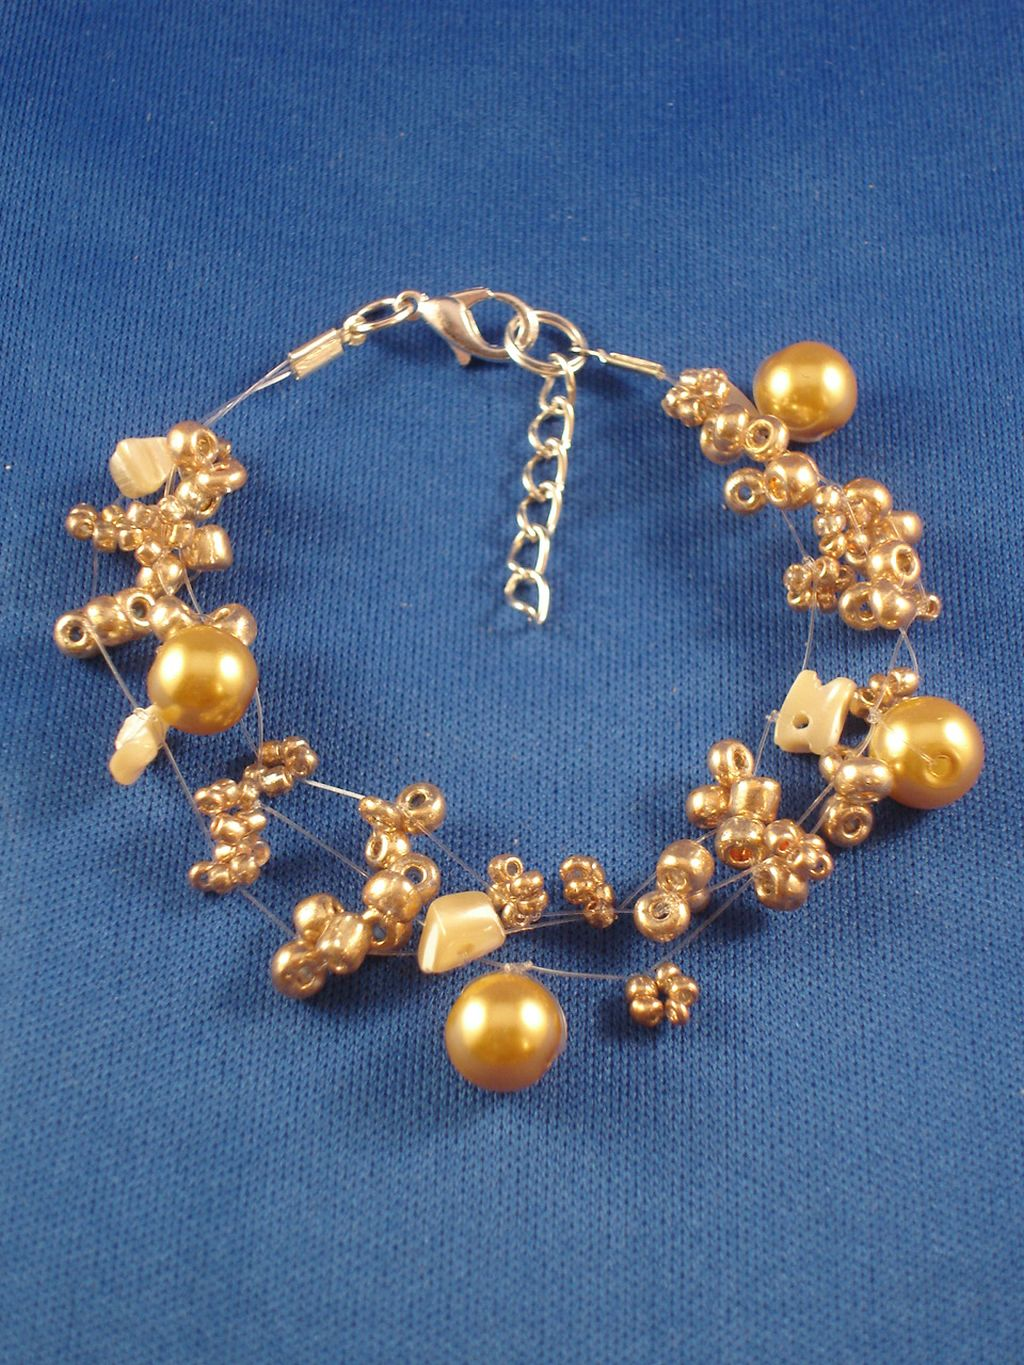 Beige Contemporary Bracelet, Artificial Pearls, Genuine Stones, Beads